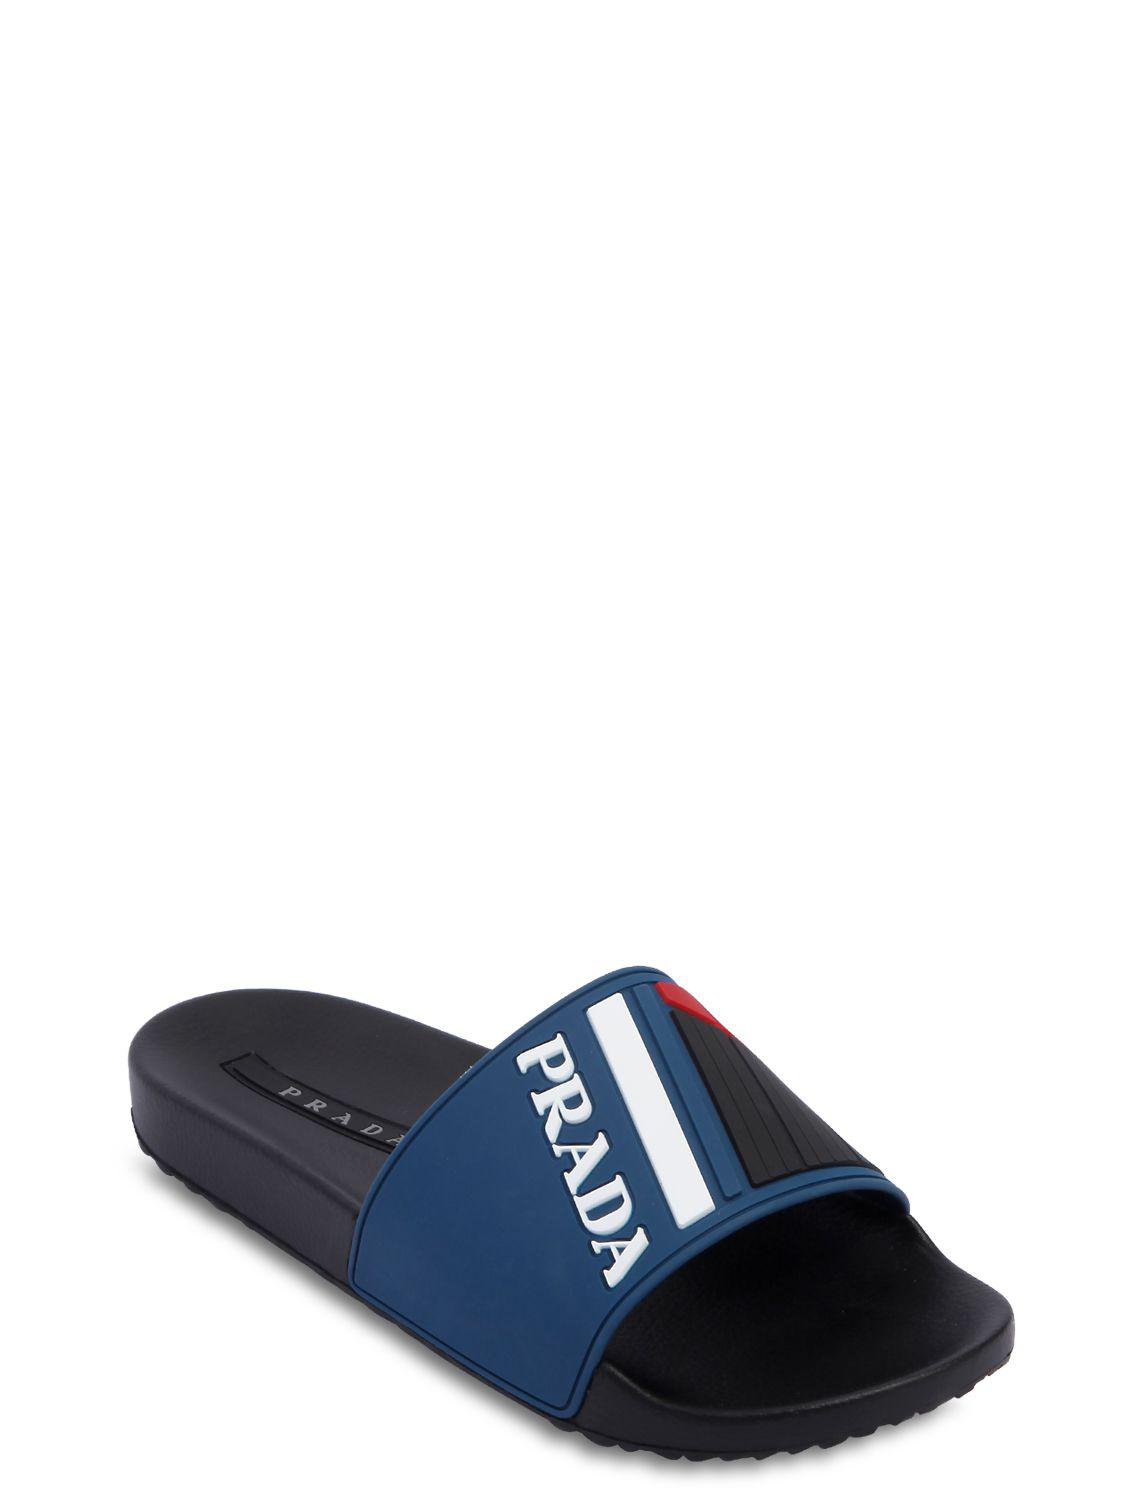 528c9a8cdd69d0 Lyst - Prada Logo Slides in Blue for Men - Save 62%